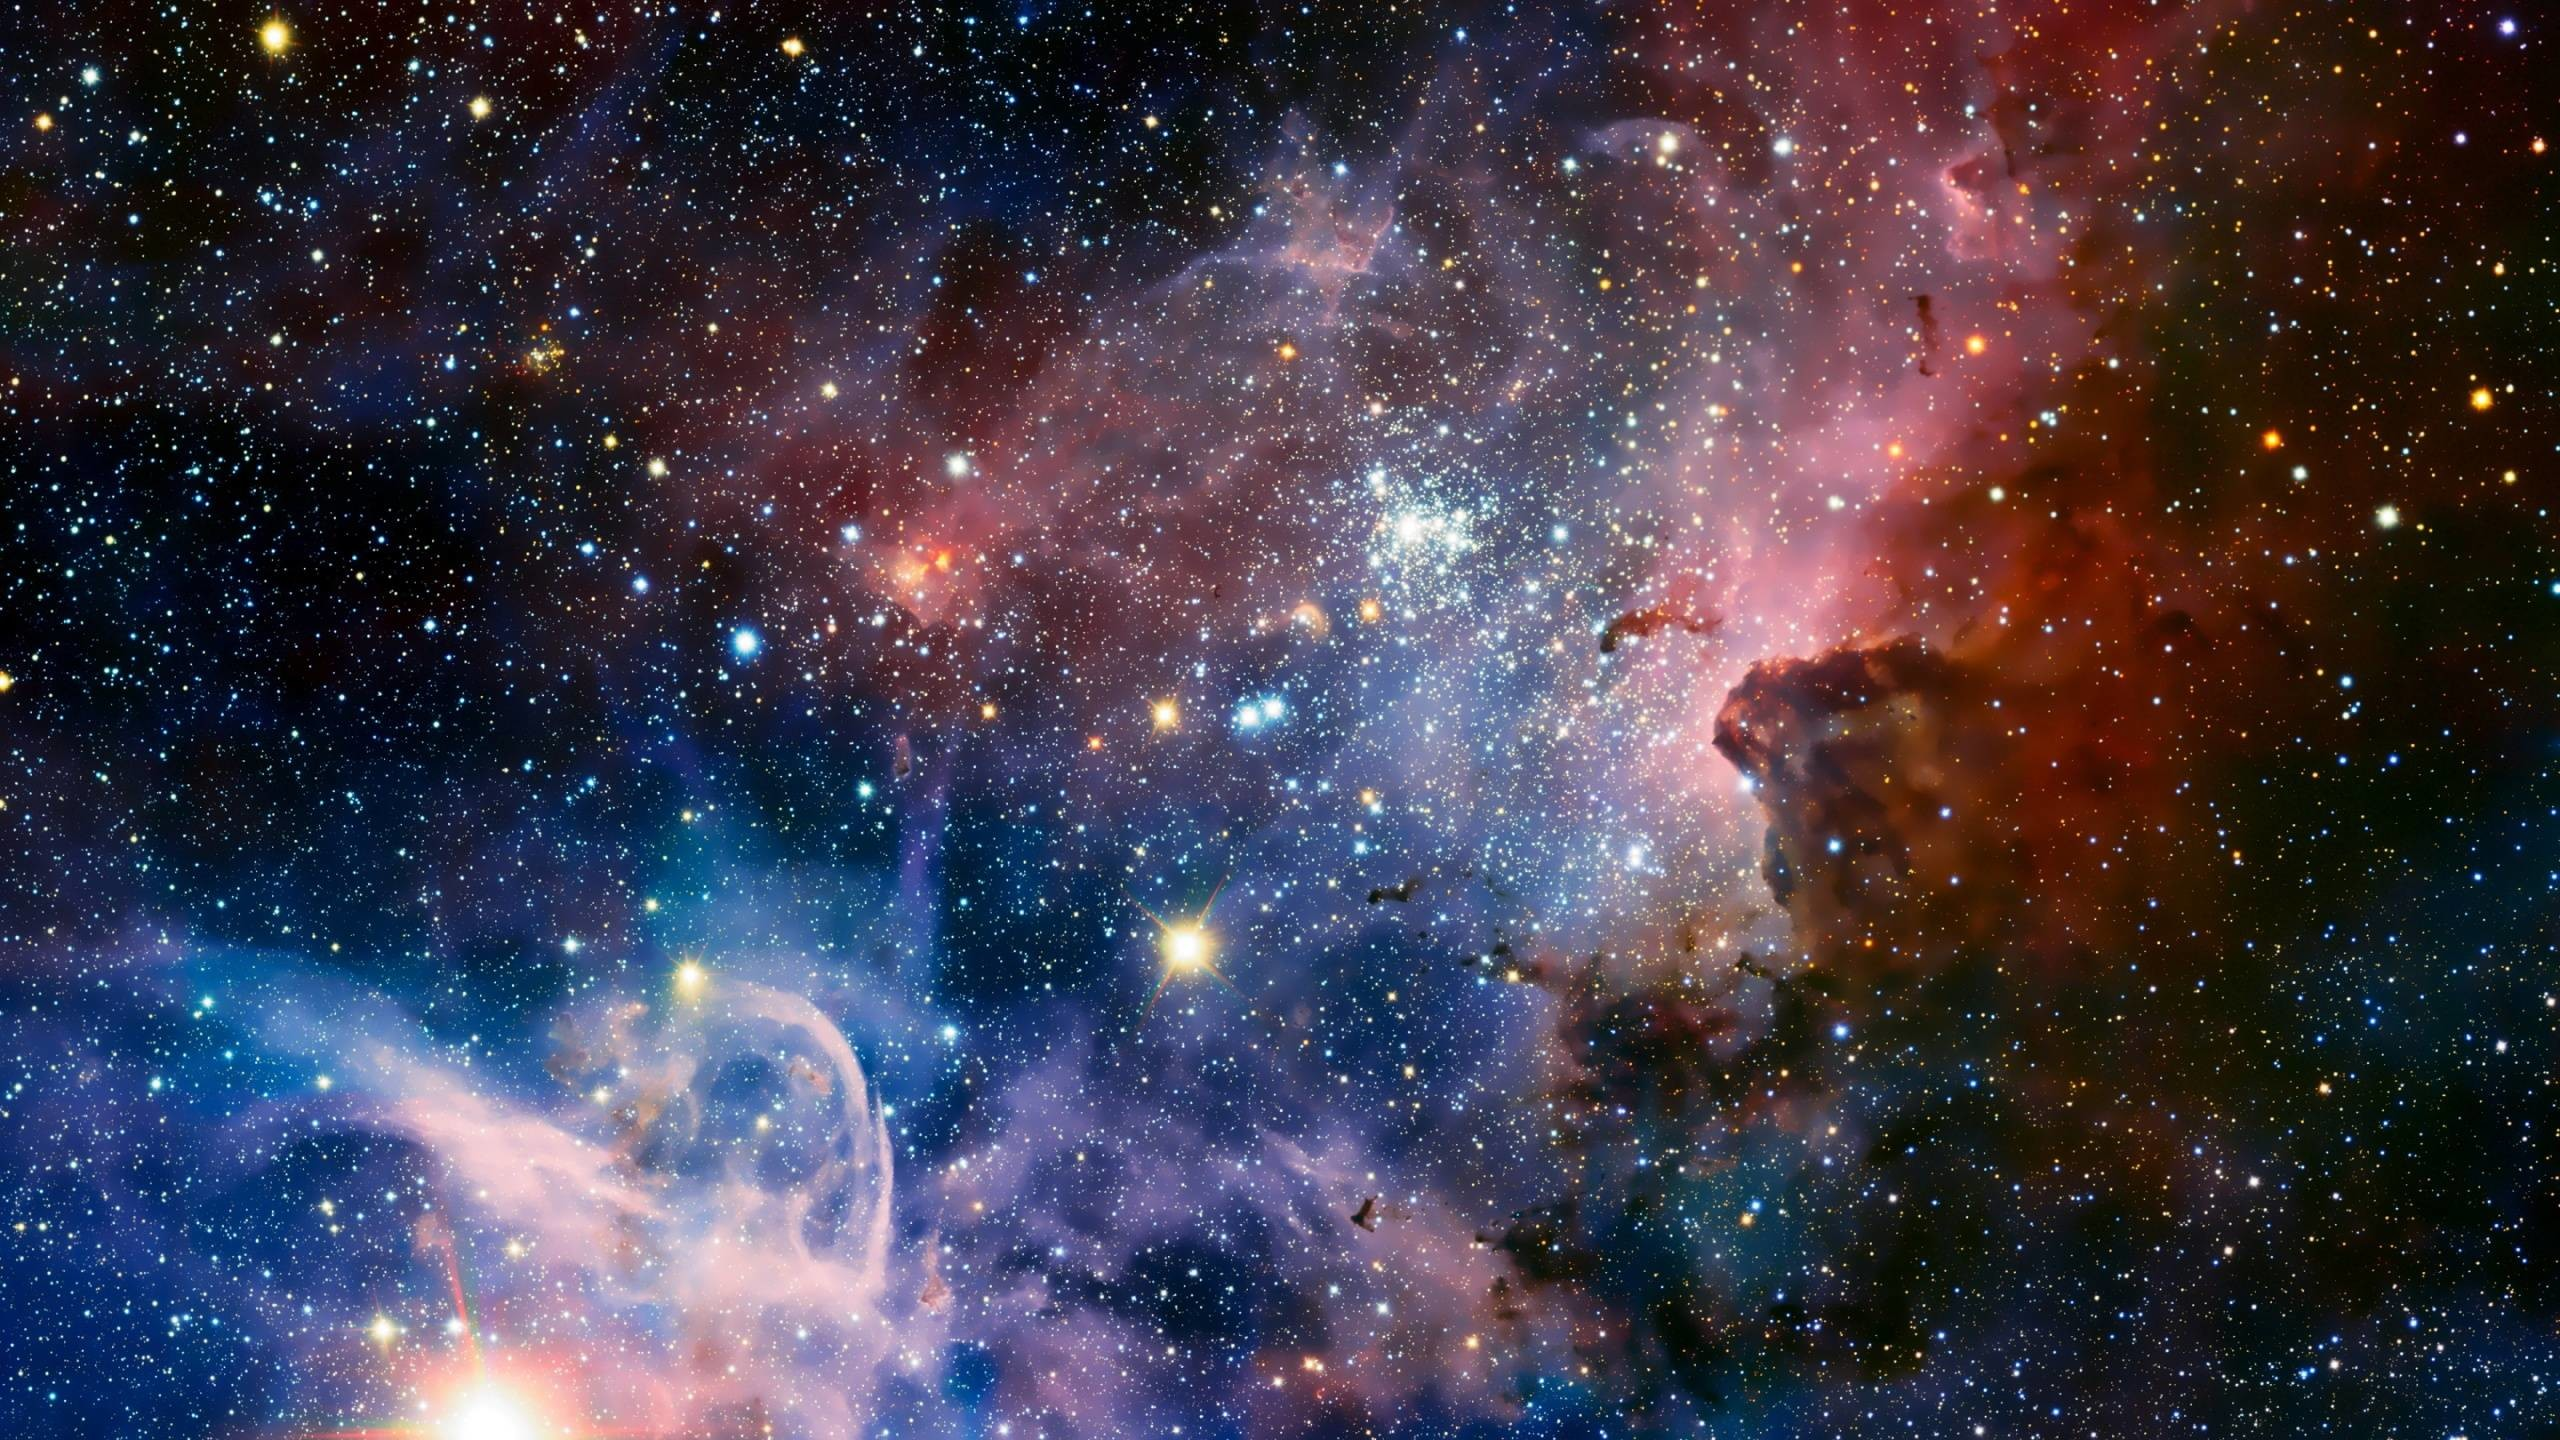 2560x1440 Wallpapers For Cool Backgrounds Of Space With Stars